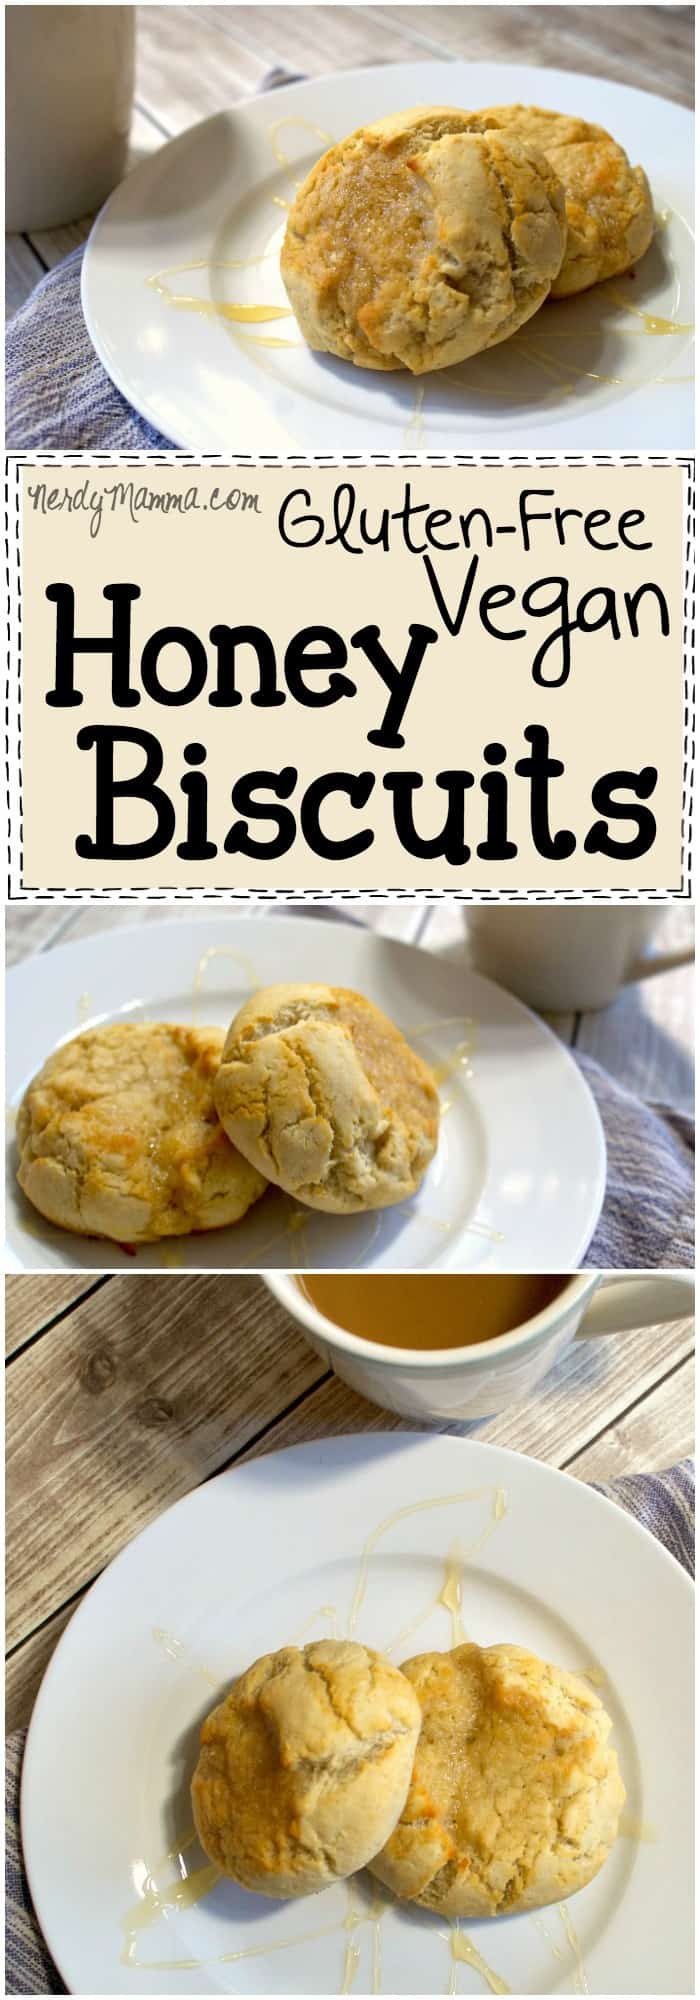 This recipe for gluten-free vegan honey biscuits is SO AWESOME. It looks so easy and the biscuits...wow. Pretty sure this is paleo, too. LOVE!